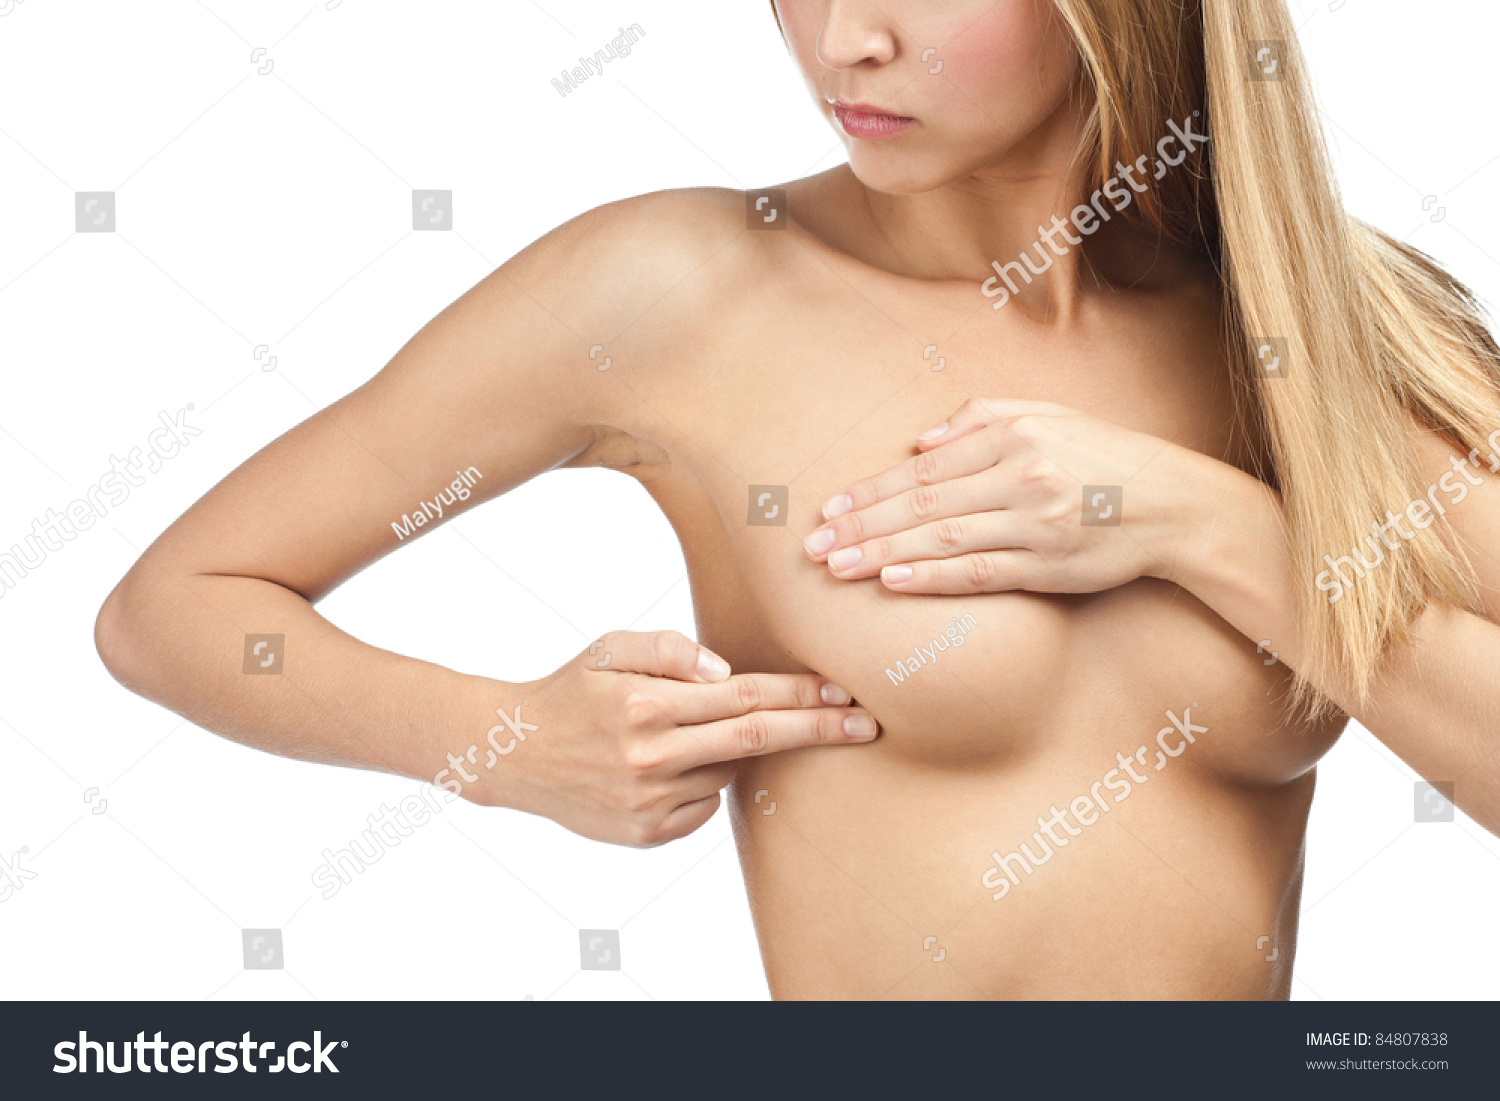 Young beautiful woman examining her breast for lumps or signs of breast cancer